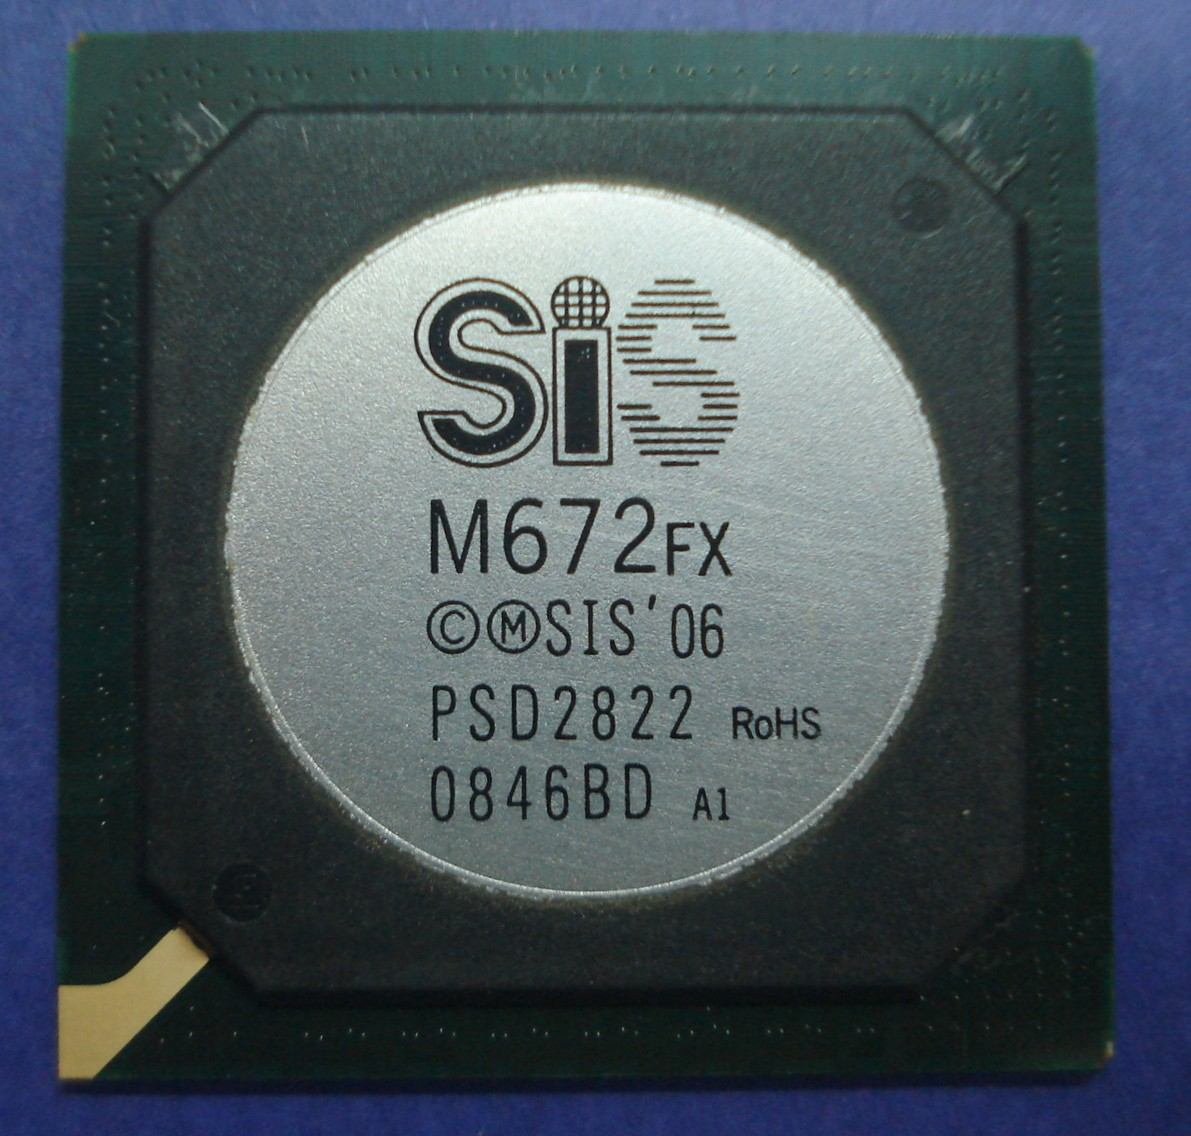 CHIPSET SIS M672FX WINDOWS VISTA DRIVER DOWNLOAD